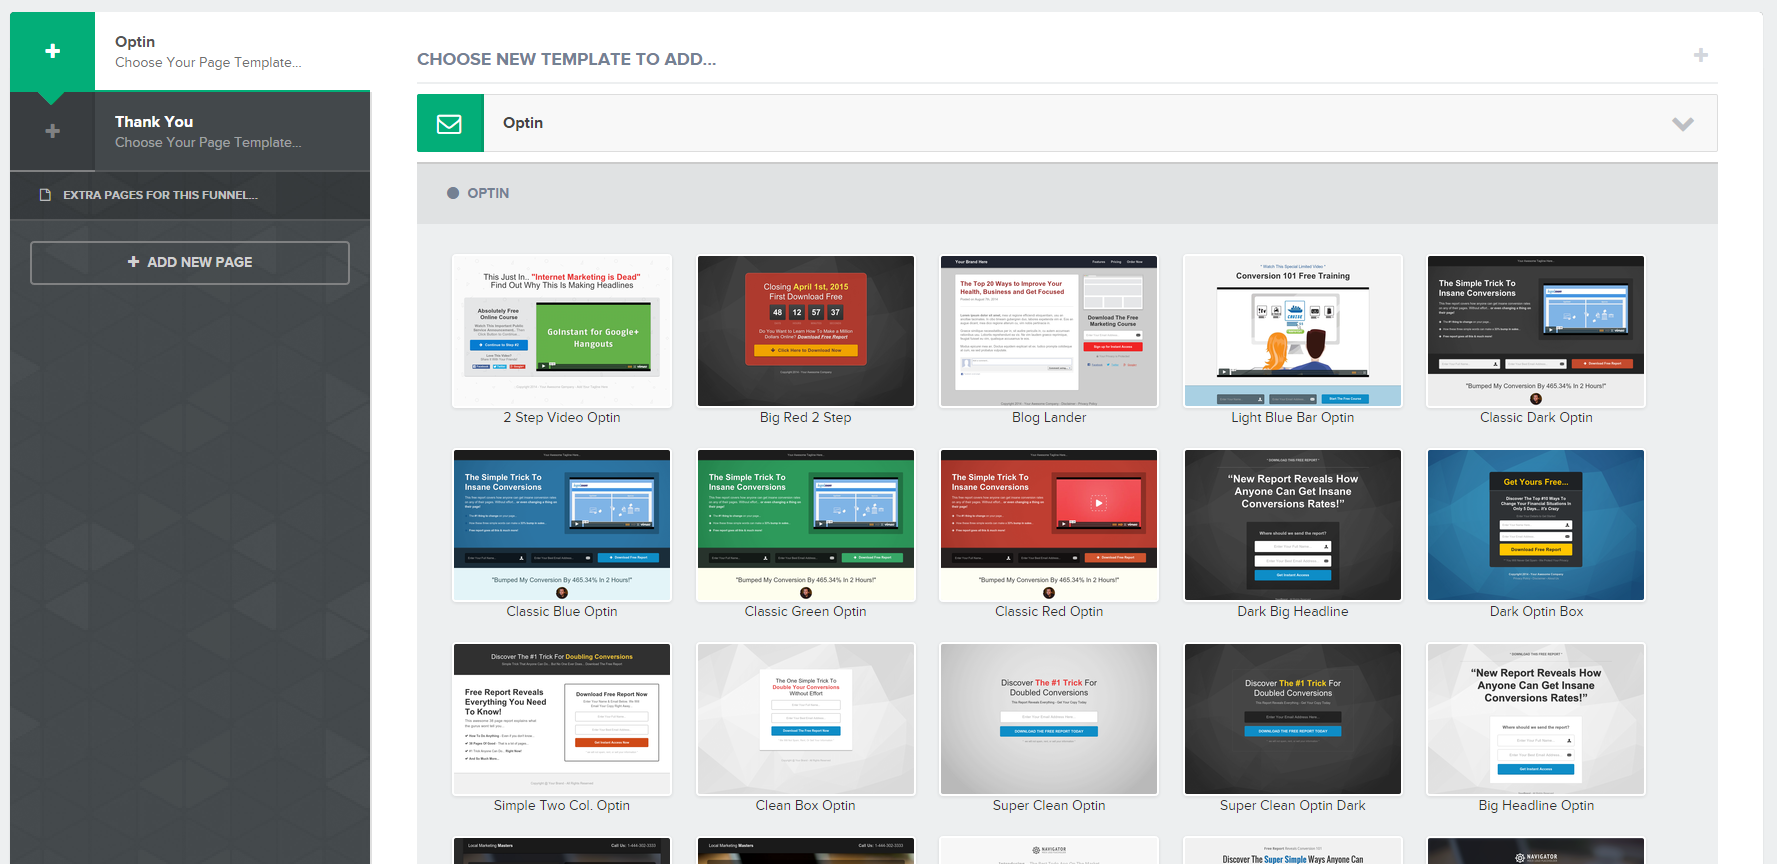 Clickfunnels Membership Area - An Overview